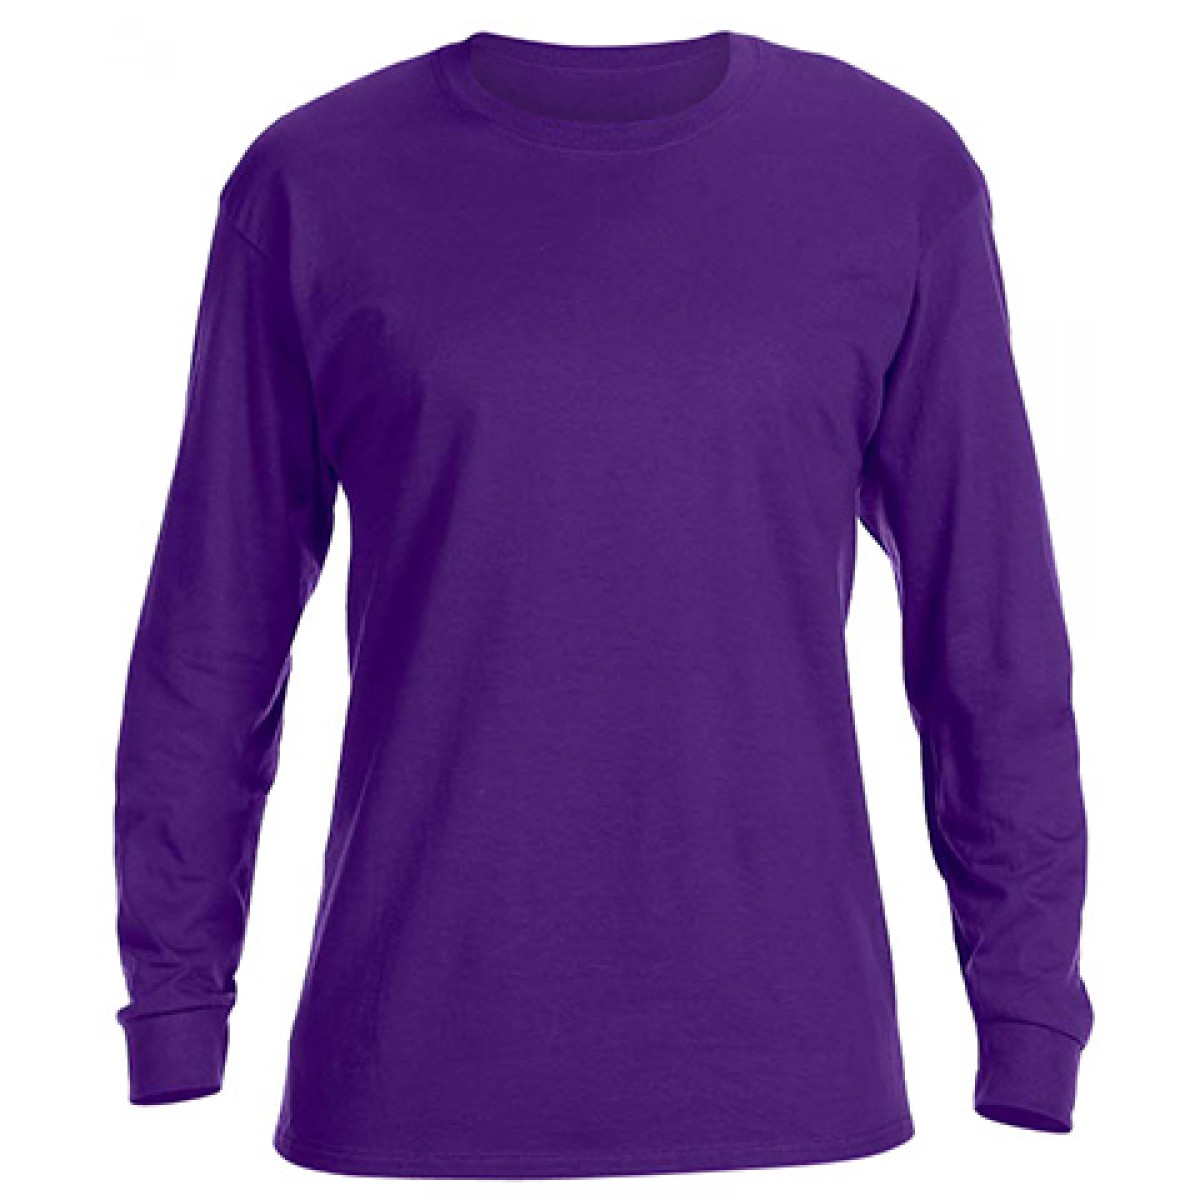 Basic Long Sleeve Crew Neck -Purple-M